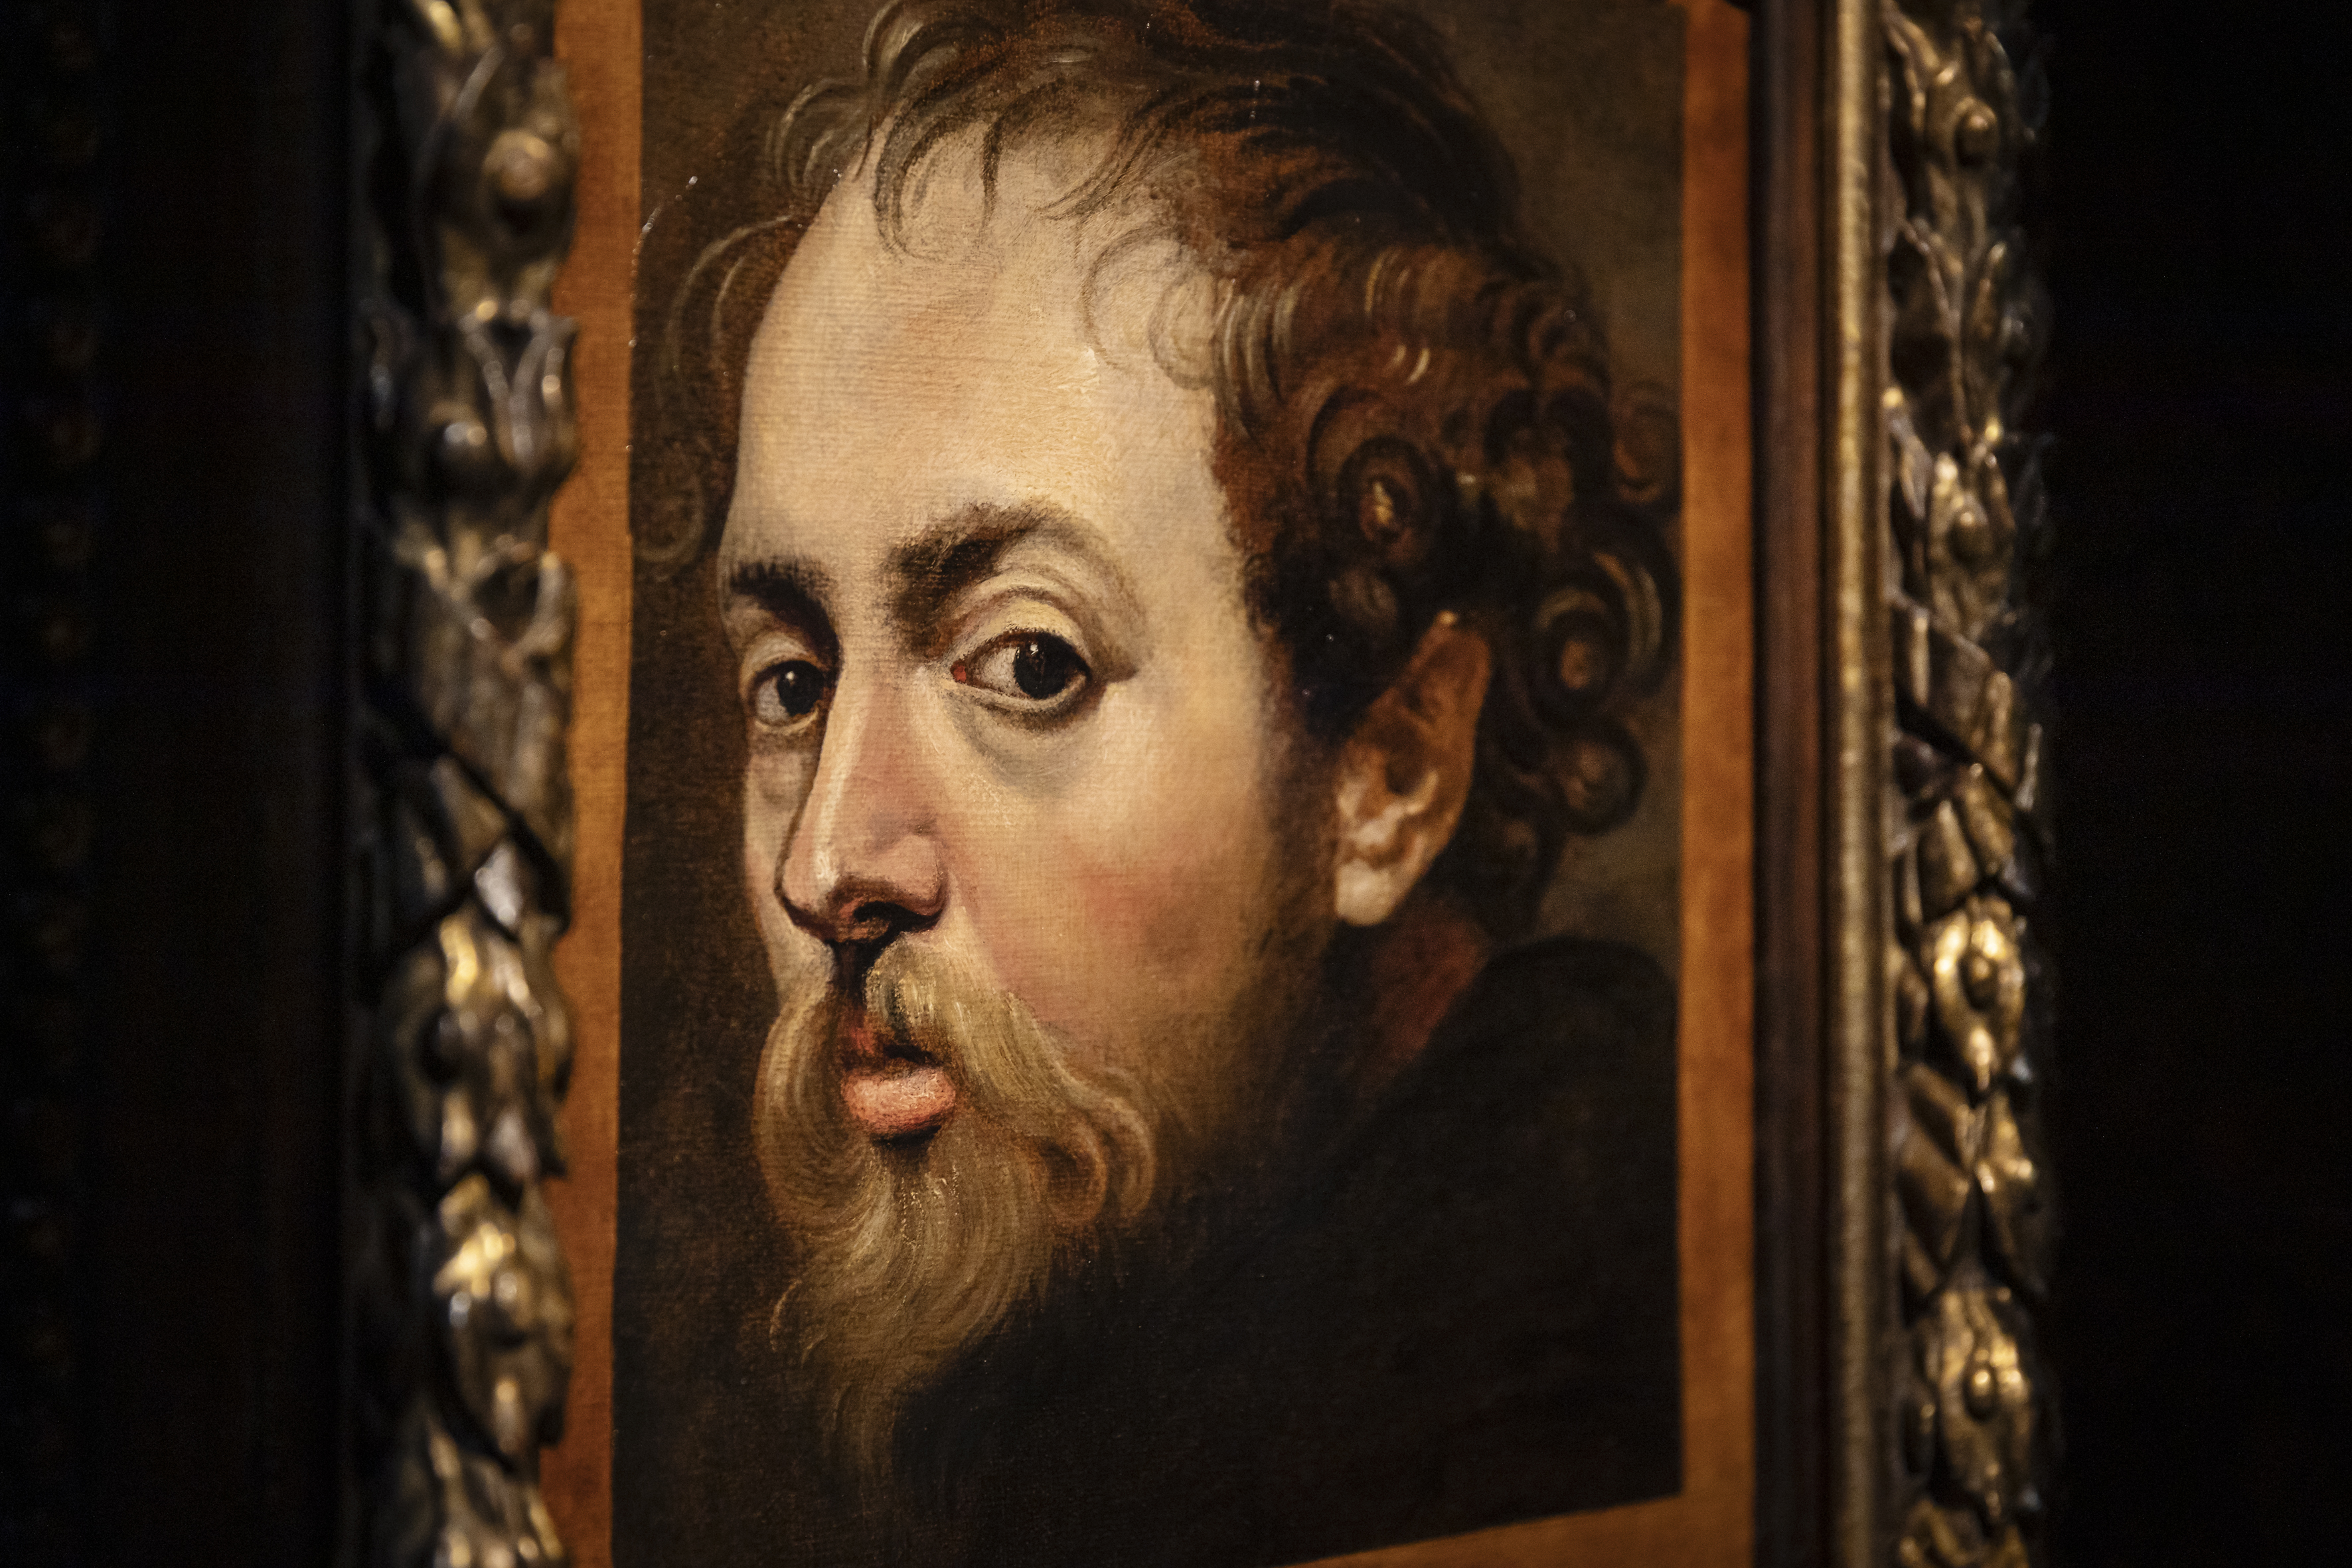 Rubens, Zelfportret detail, ca. 1604, in langdurig bruikleen Rubenshuis, particuliere verzameling, Foto Ans Brys